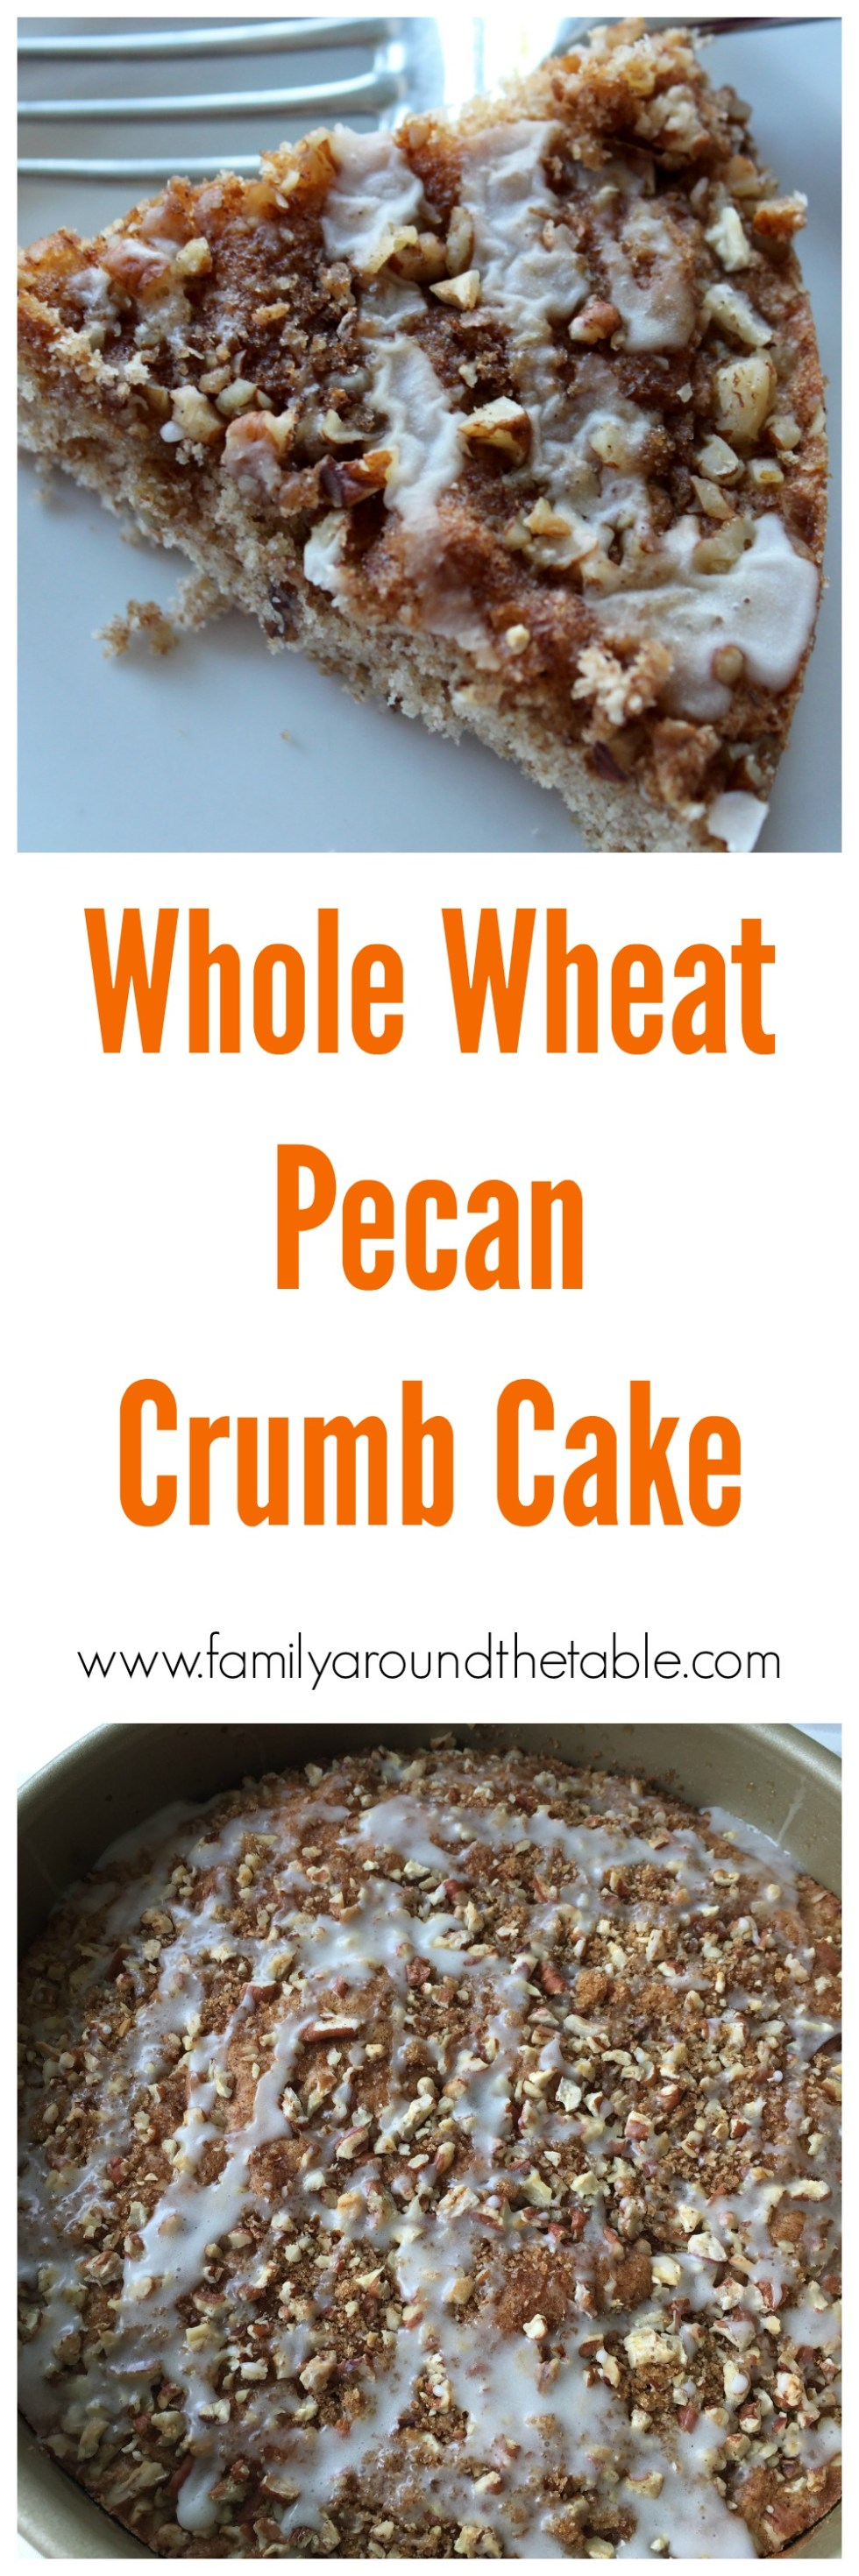 Whole Wheat Pecan Crumb Cake is a tasty start to the day.